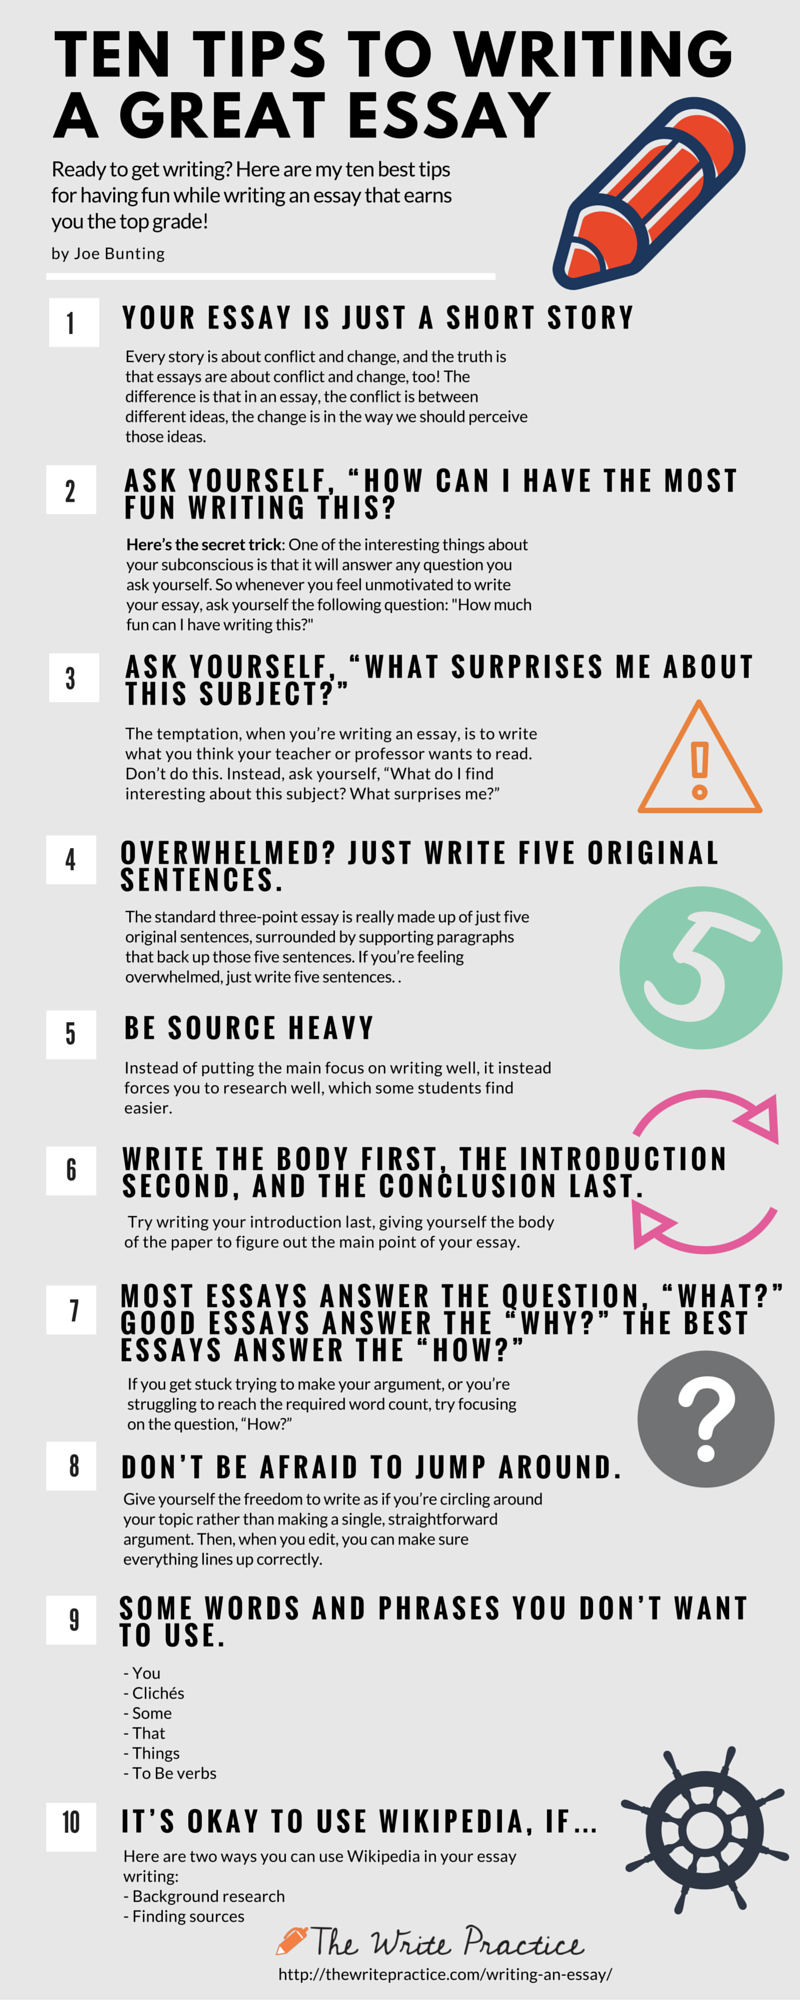 001 Tips For Writing An Essay1 Essay Example Incredible Best Full